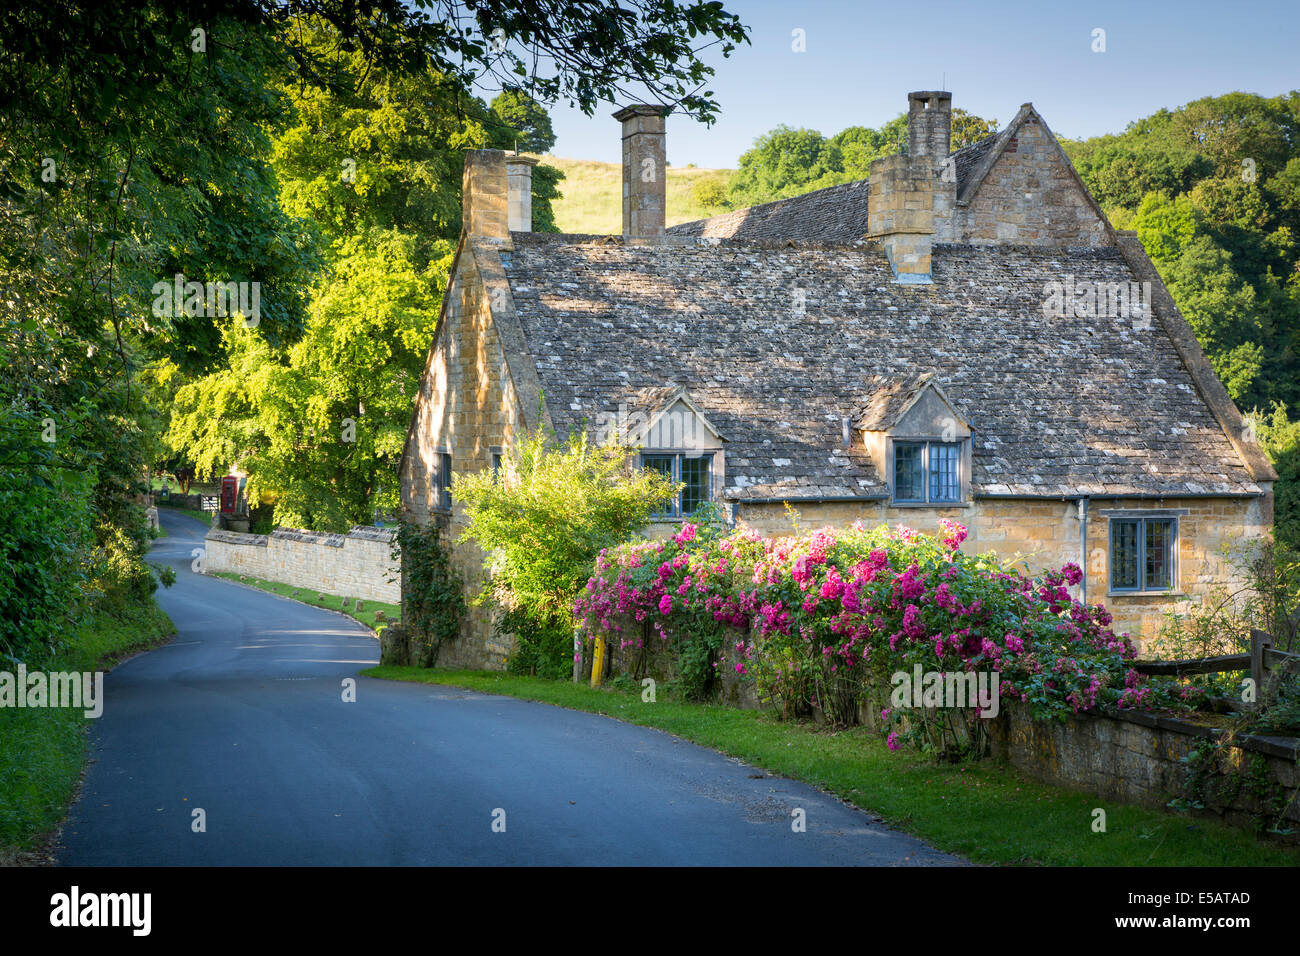 Cottage house behind wall of roses, Snowshill, Gloucestershire, England - Stock Image